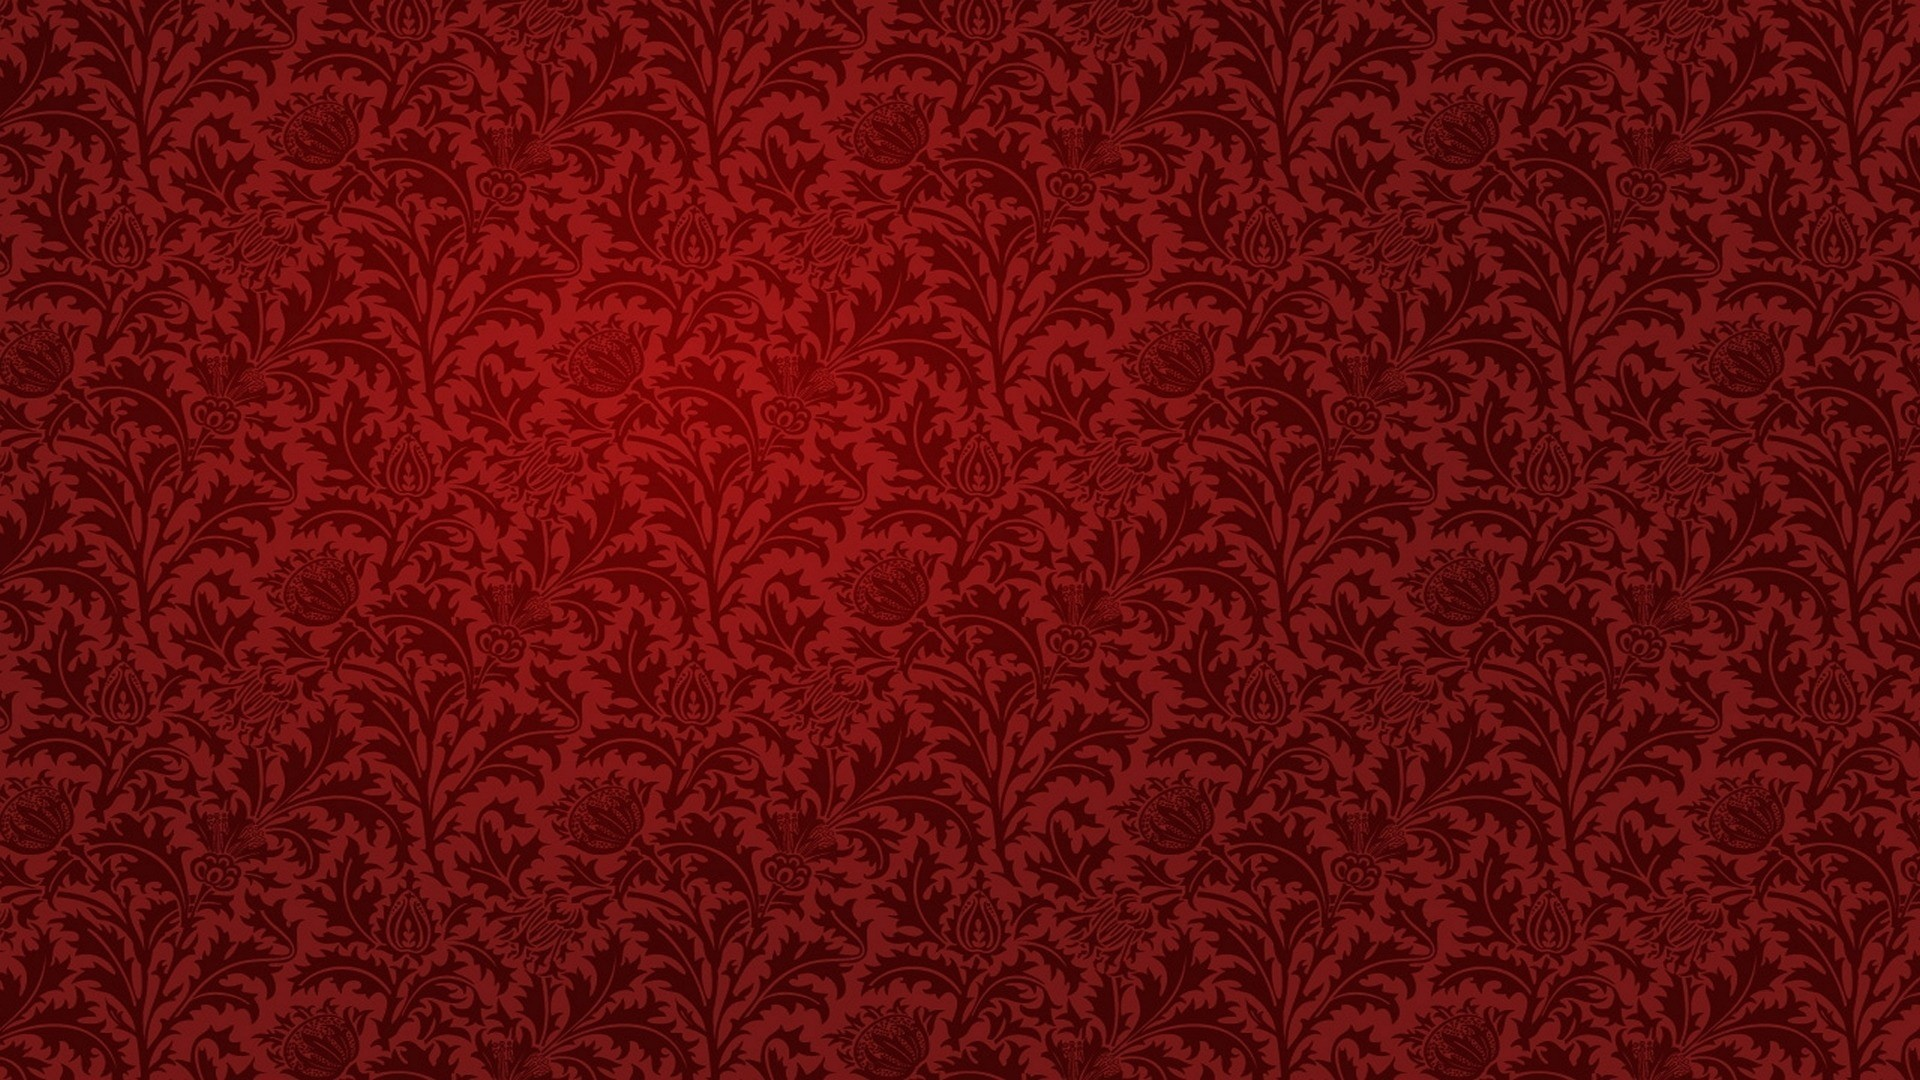 47 Vintage Wallpaper For Desktop And Mobile HD Wallpapers Download Free Images Wallpaper [1000image.com]